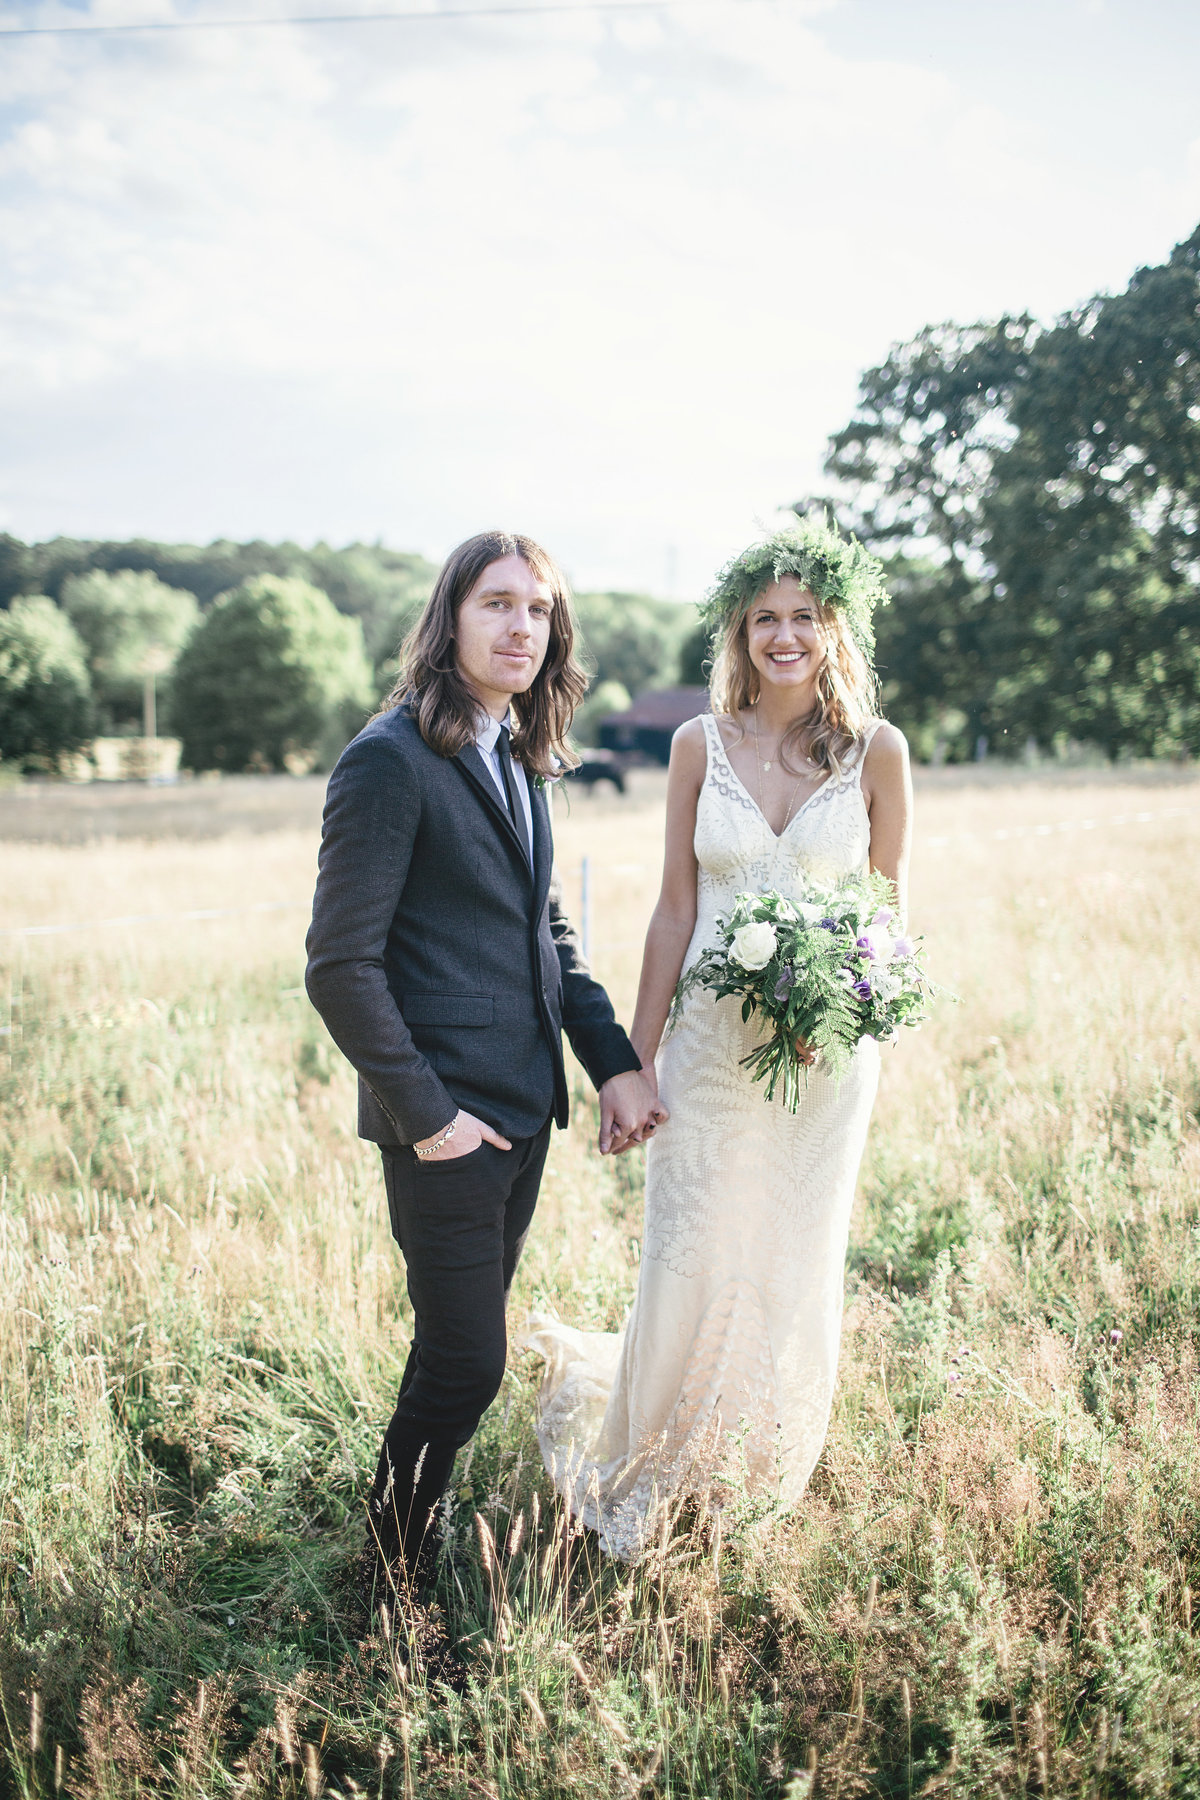 BRIDE AND GROOM RUSTIC BOHEMIAN WEDDING